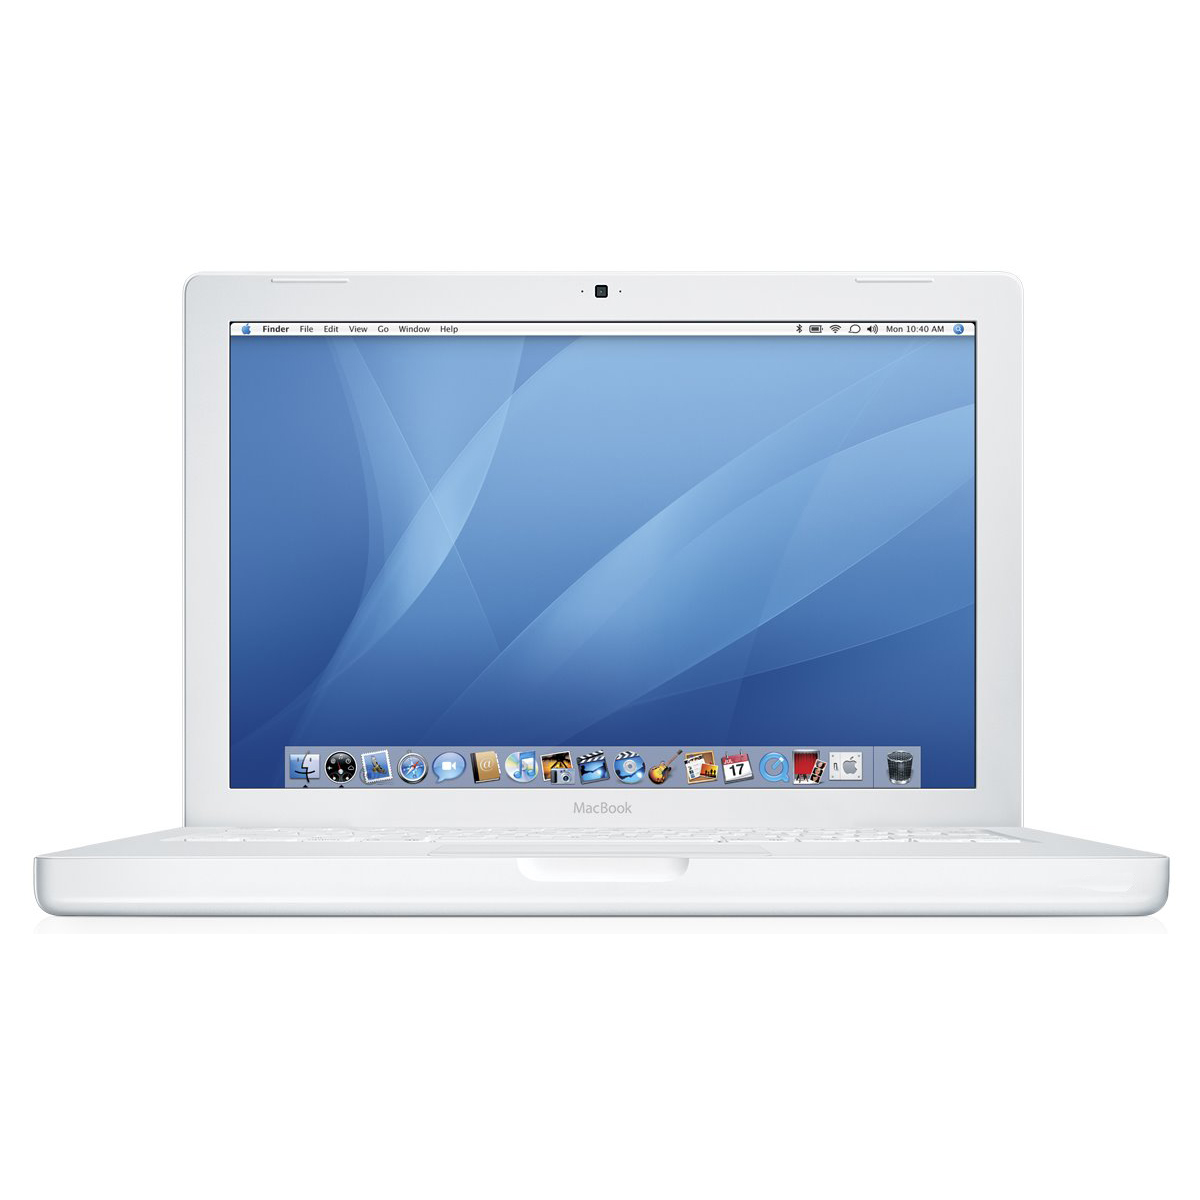 "Apple MacBook MB061LL/A 13.3"" Notebook PC (2.0 GHz Intel ..."